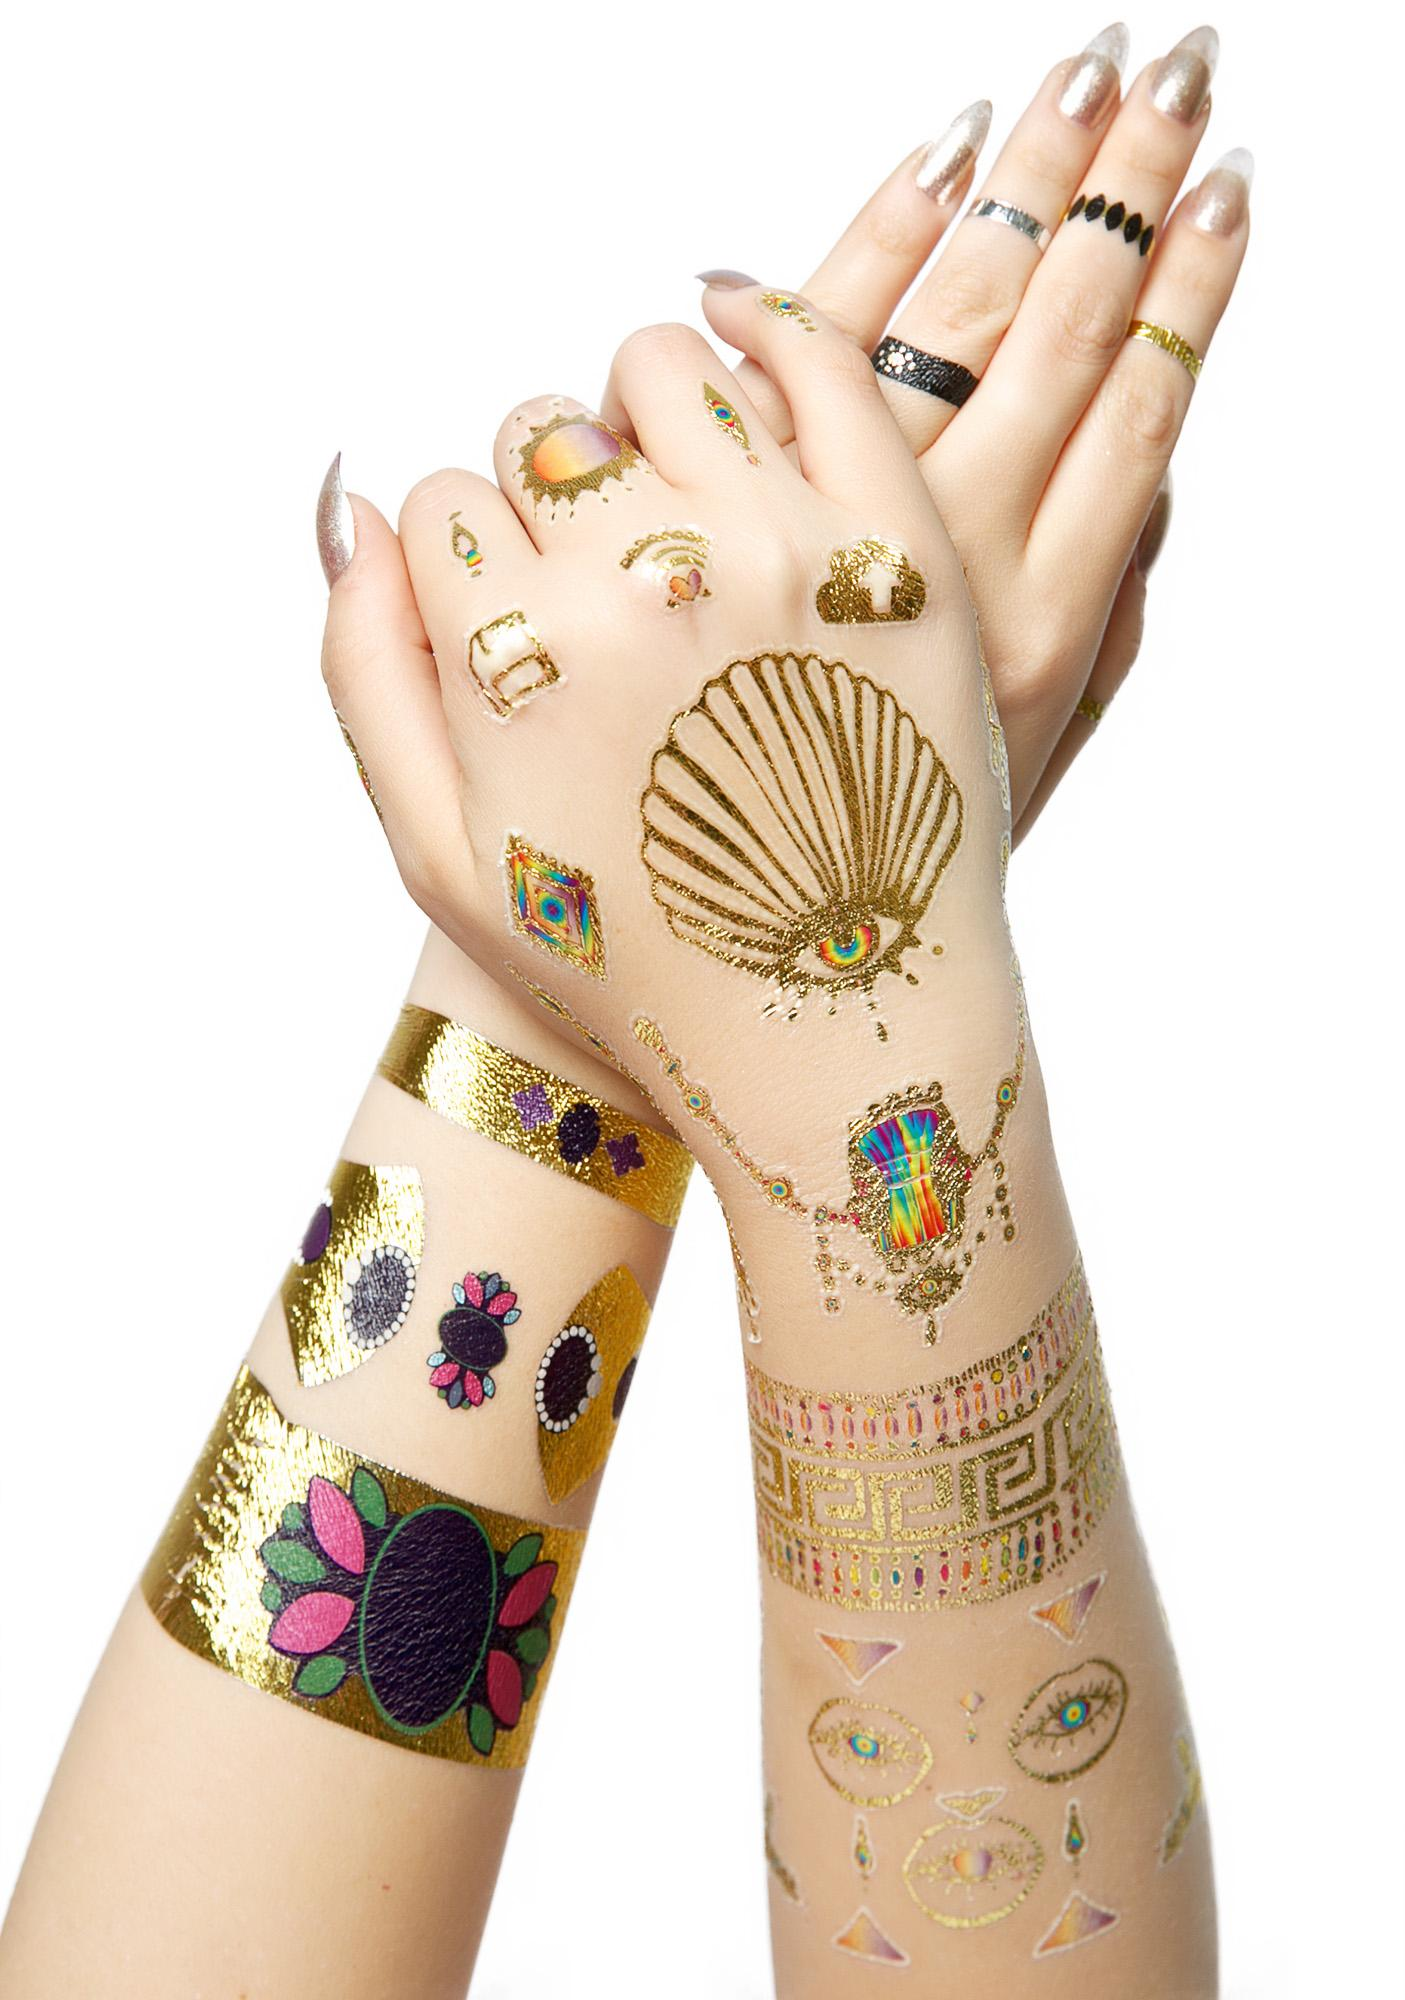 Be Bright Metallic Temporary Tattoos